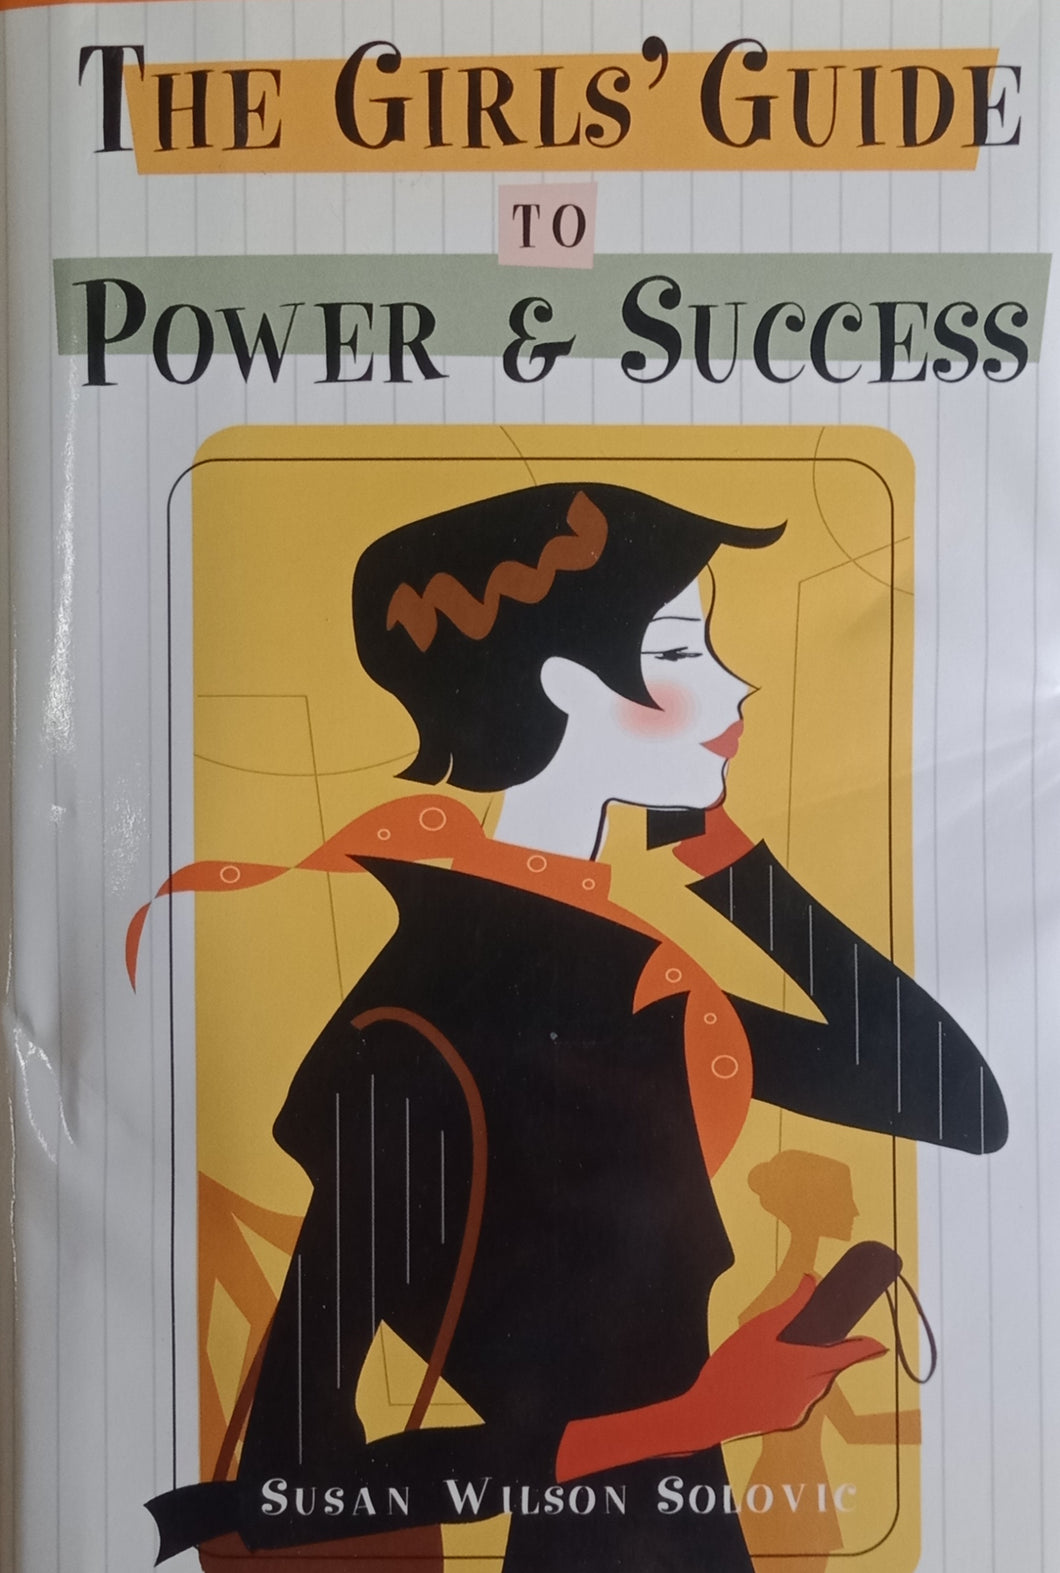 The Girl's Guide To Power And Success by Susan Wilson Solovic